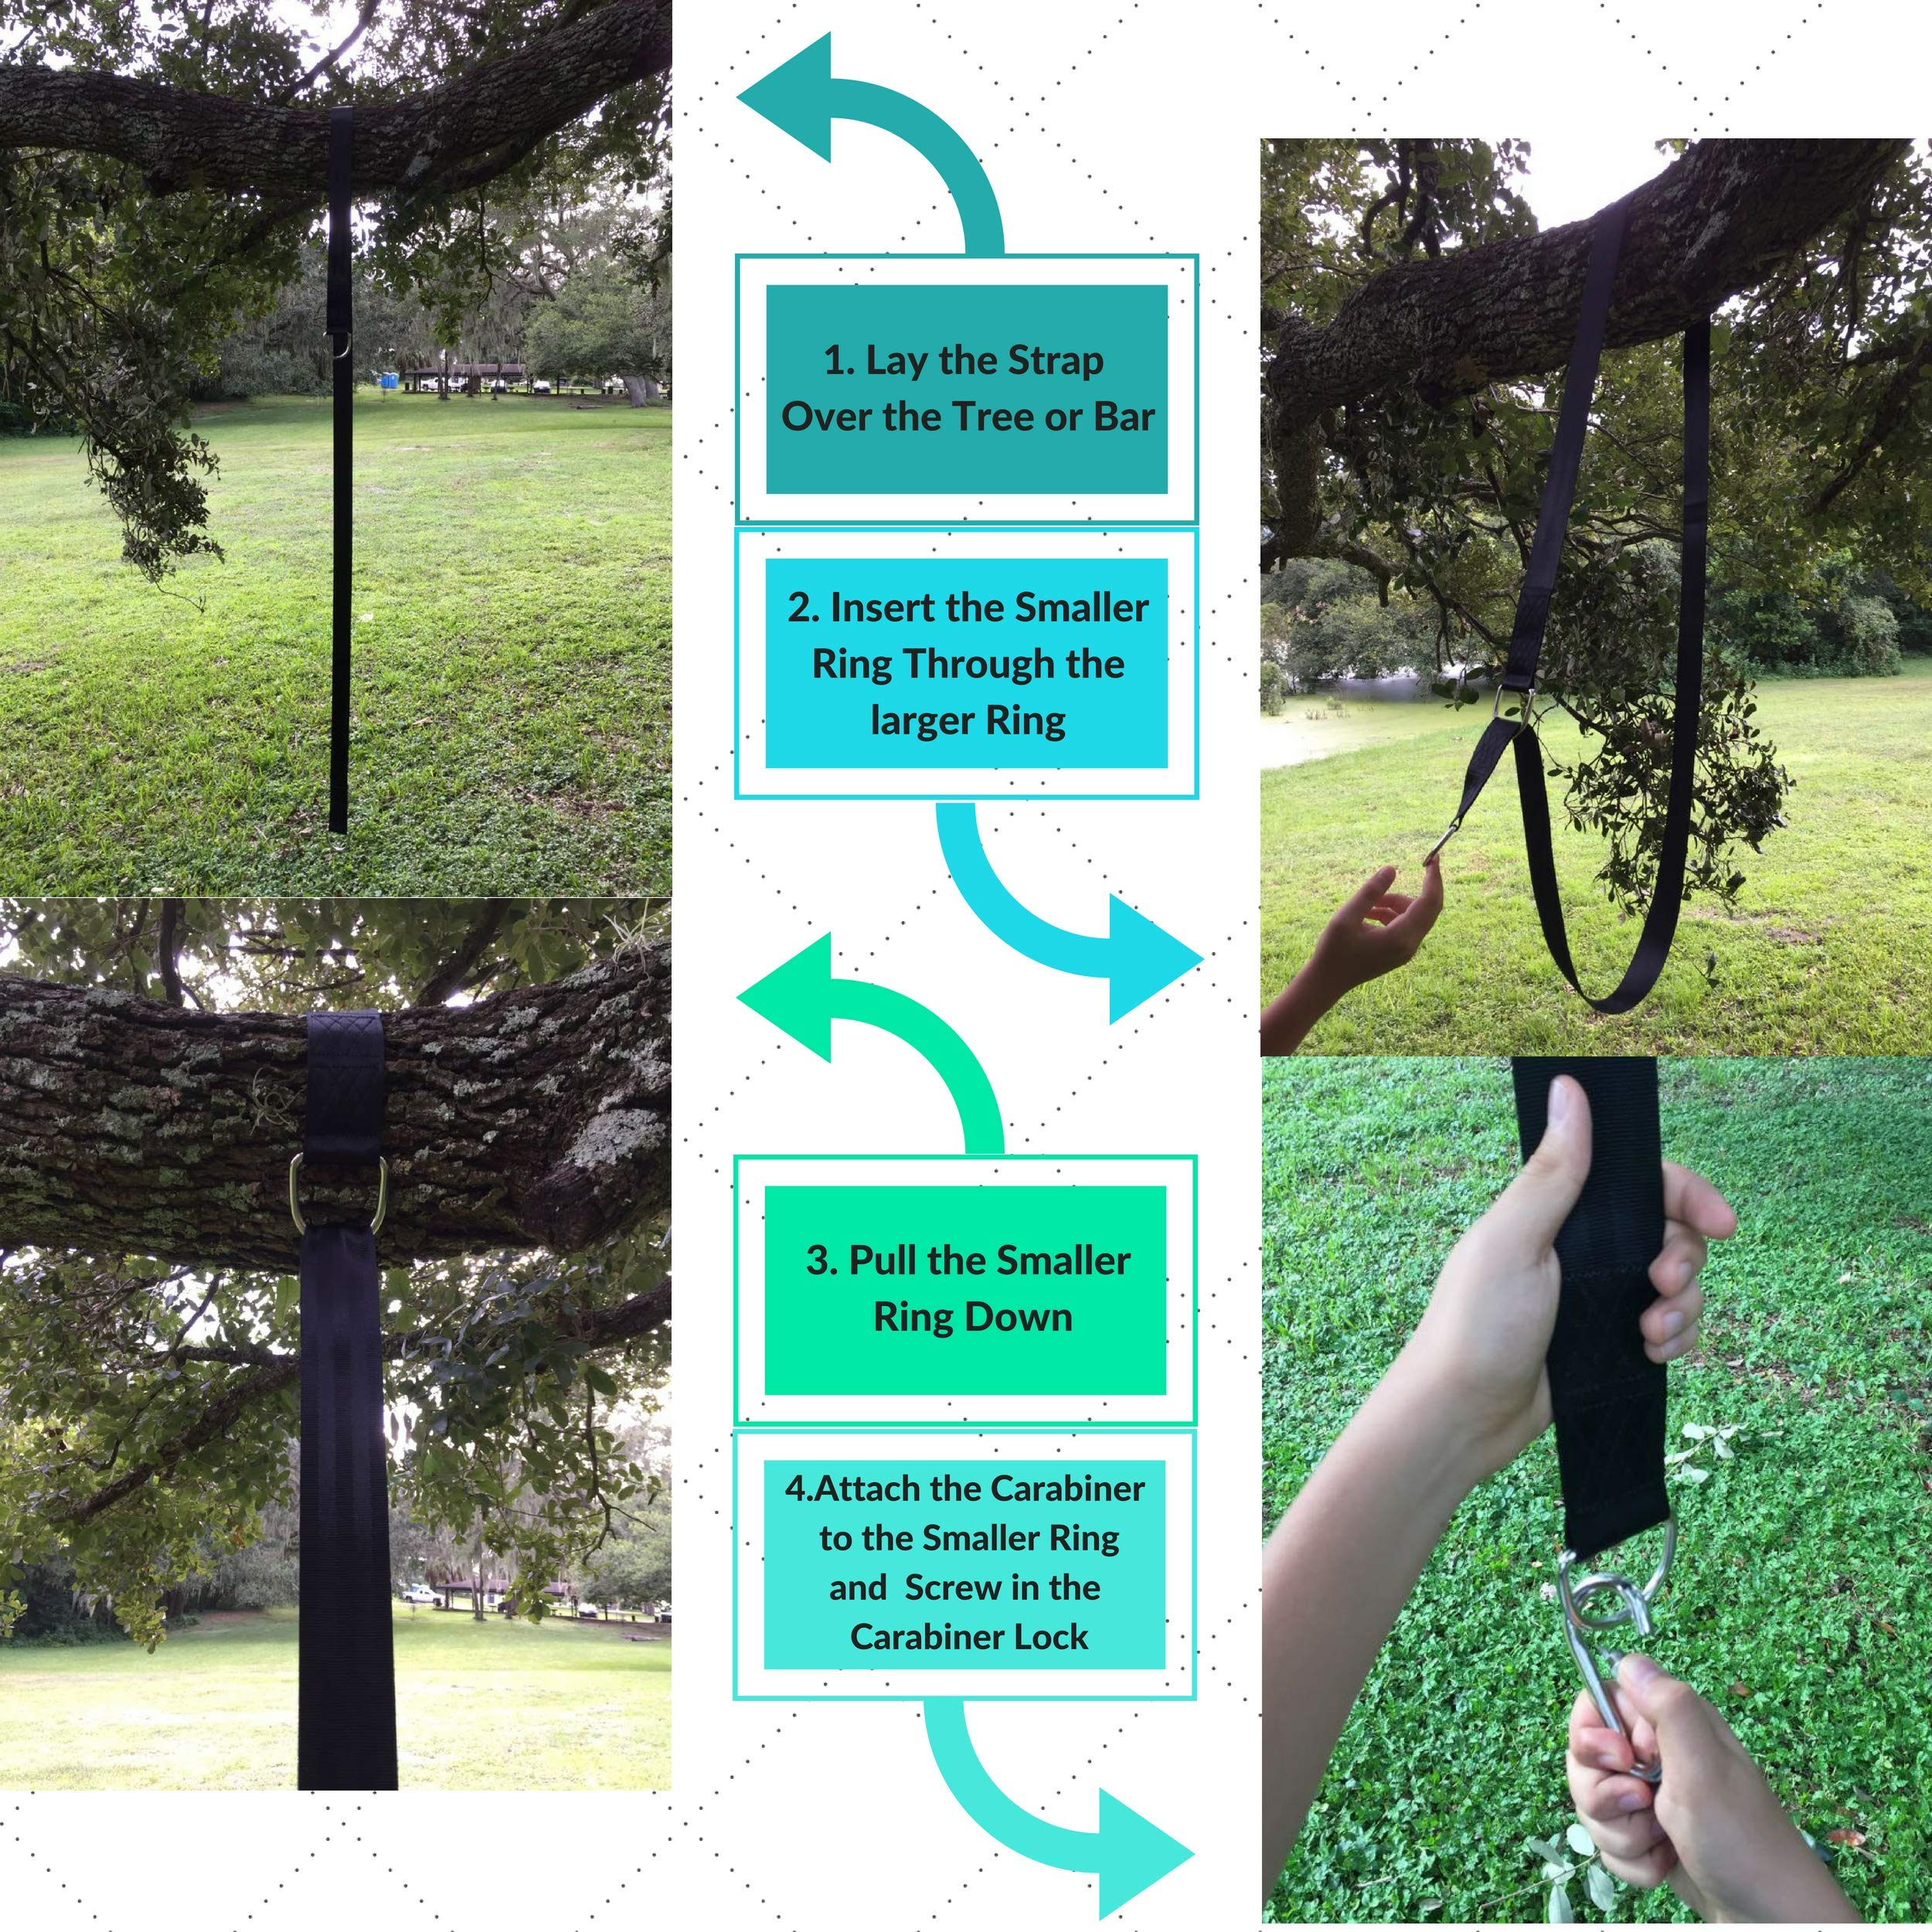 Family Forest Tree Swing Strap Hanging Kit - Two 8ft Adjustable Straps and 2 Stainless Steel Carabiners (SGS Certified) - Holds 4800 lbs - 100% Waterproof - Compatible with All Swing Types